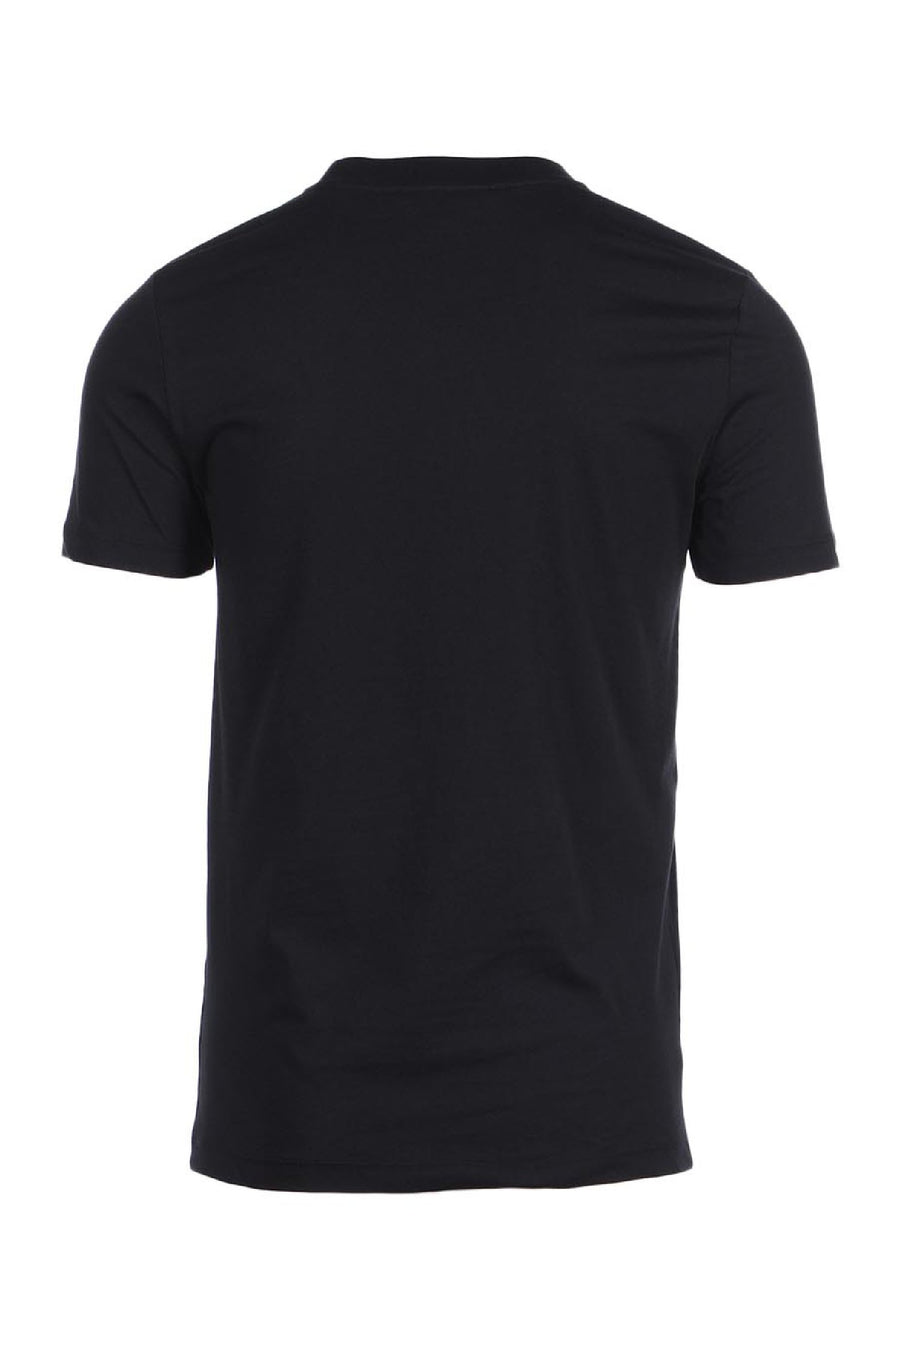 Swallow Crew Tee Men Fashion MCQ Short Sleeve Cotton Fit Casual